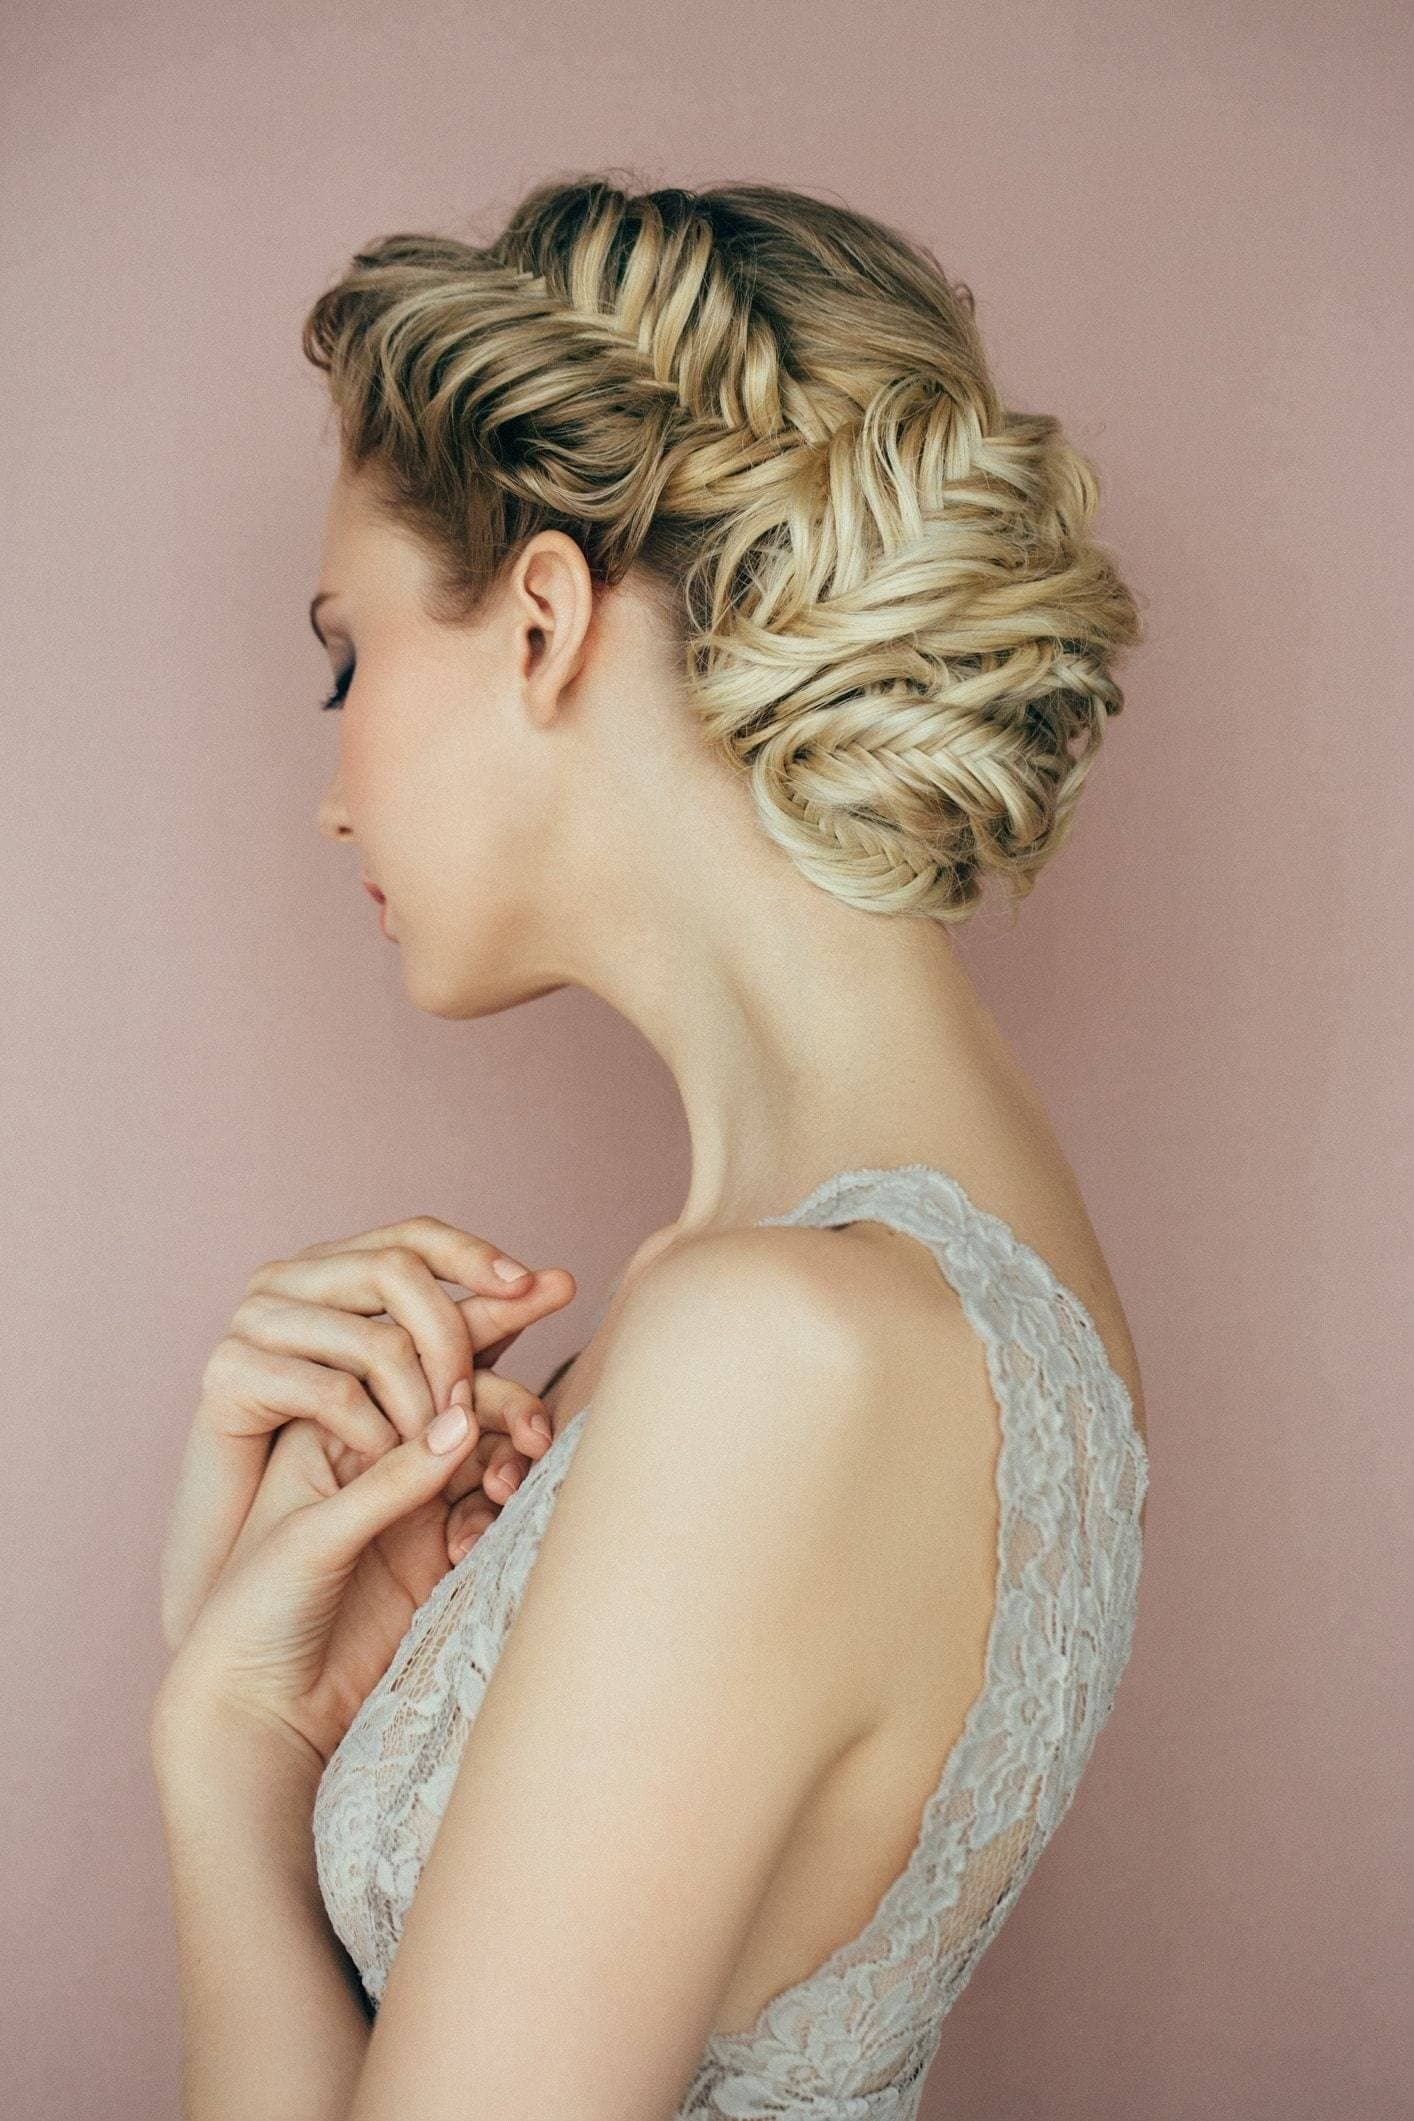 11 Gorgeous Braids for Curly Hair Perfect for the ... |Side Fishtail Braid With Curls